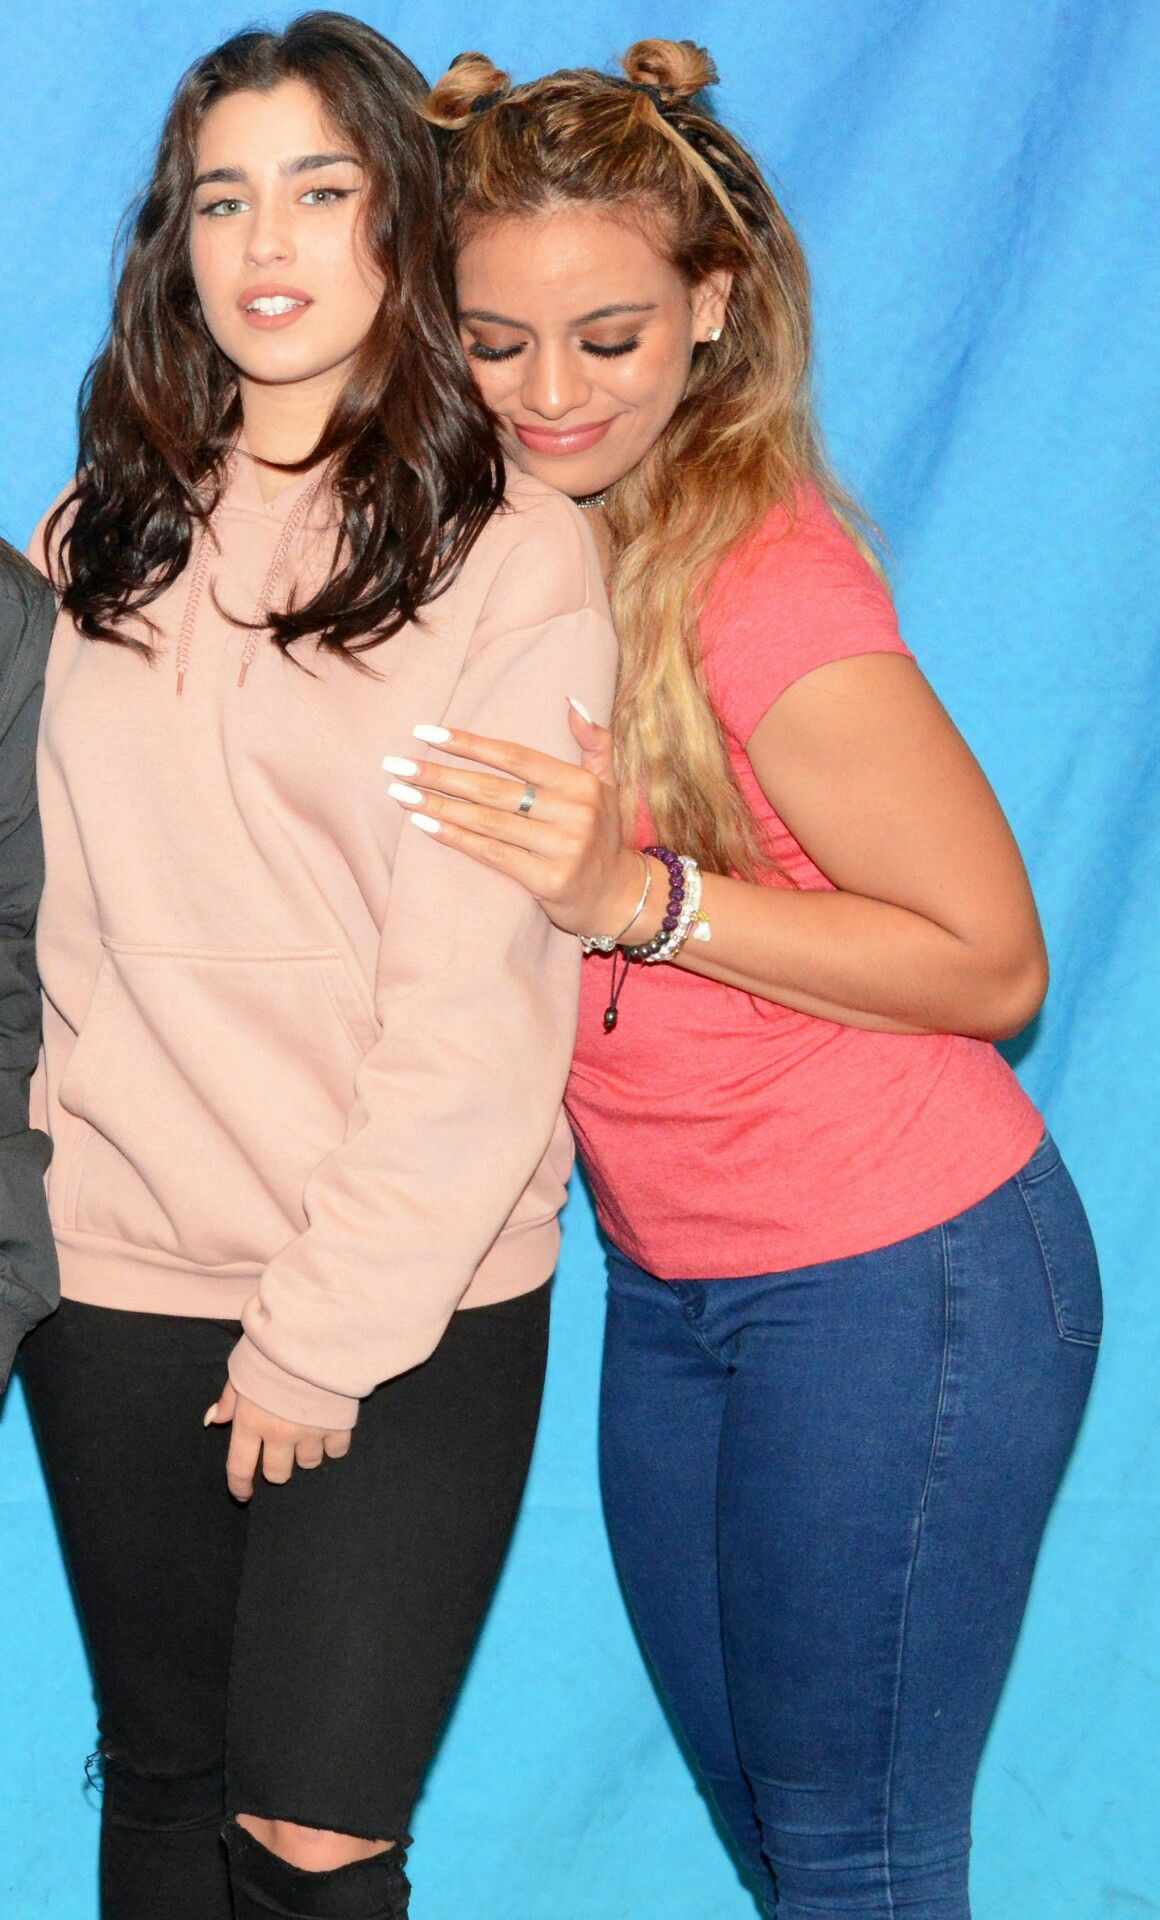 Lauren jauregui and Dinah | Laurinah | Pinterest